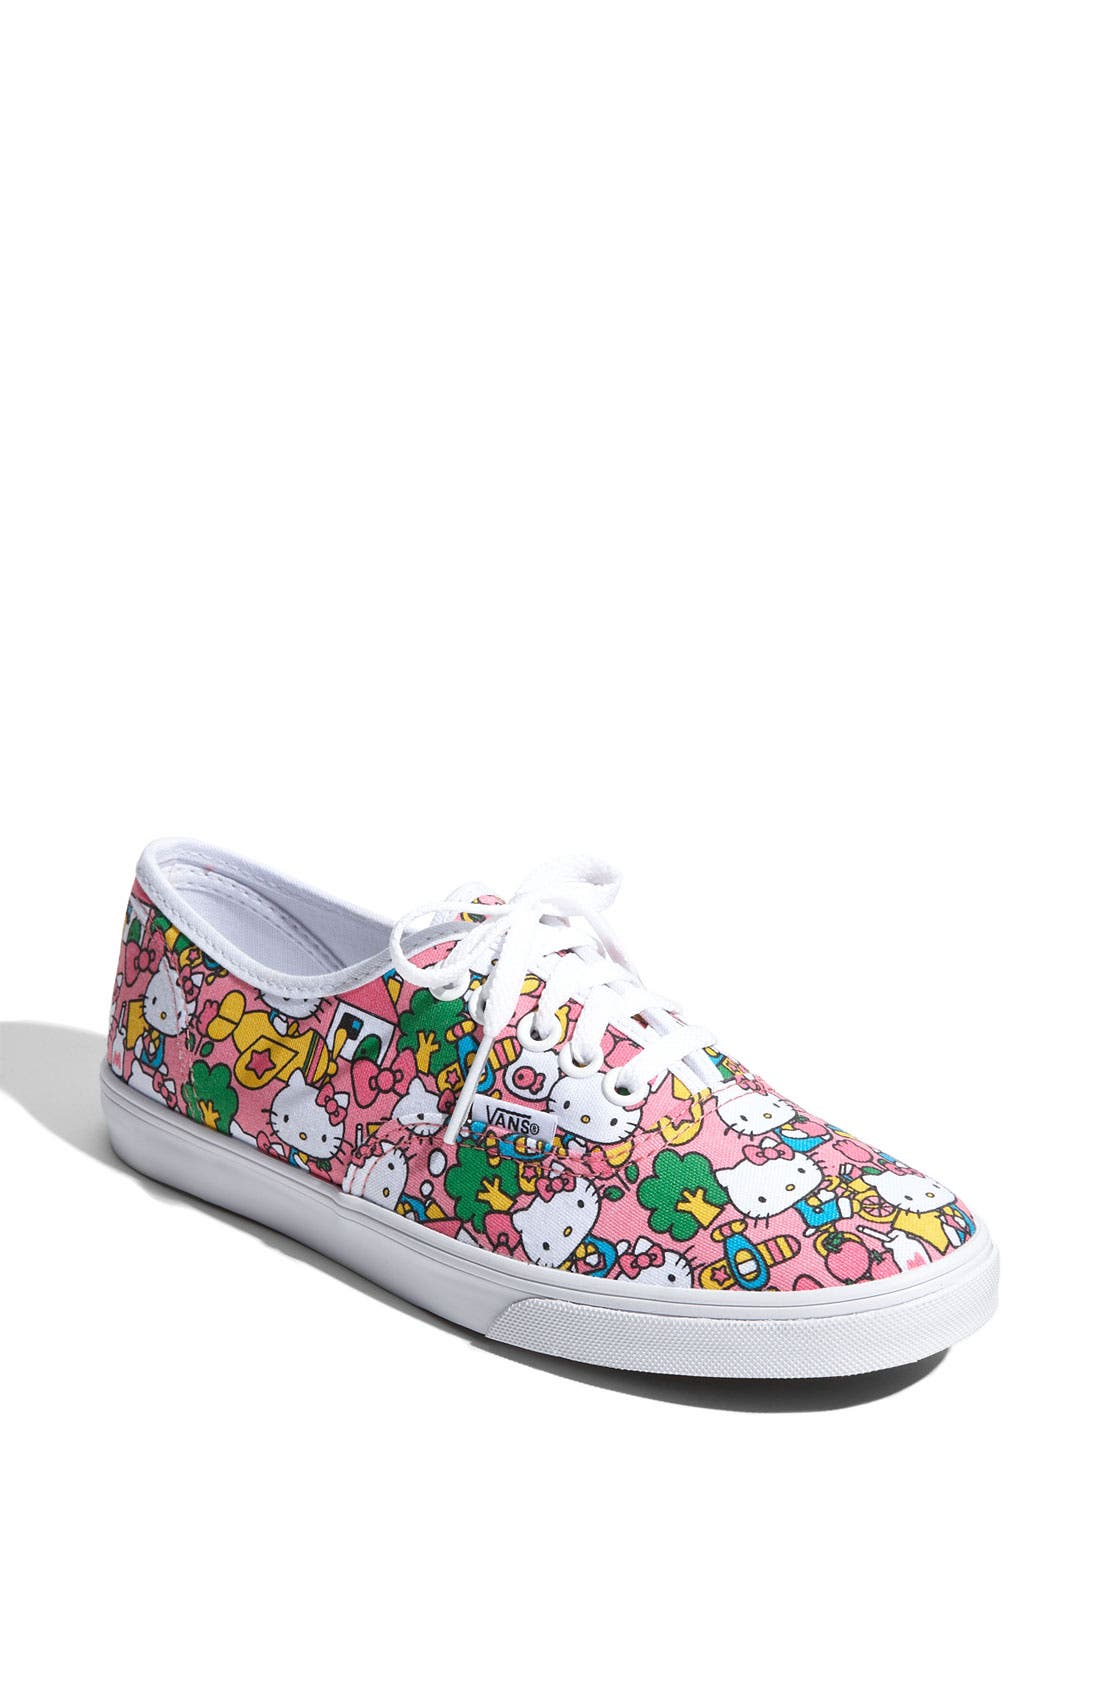 Alternate Image 1 Selected - Vans 'Lo Pro - Hello Kitty®' Sneaker (Women) (Limited Edition)